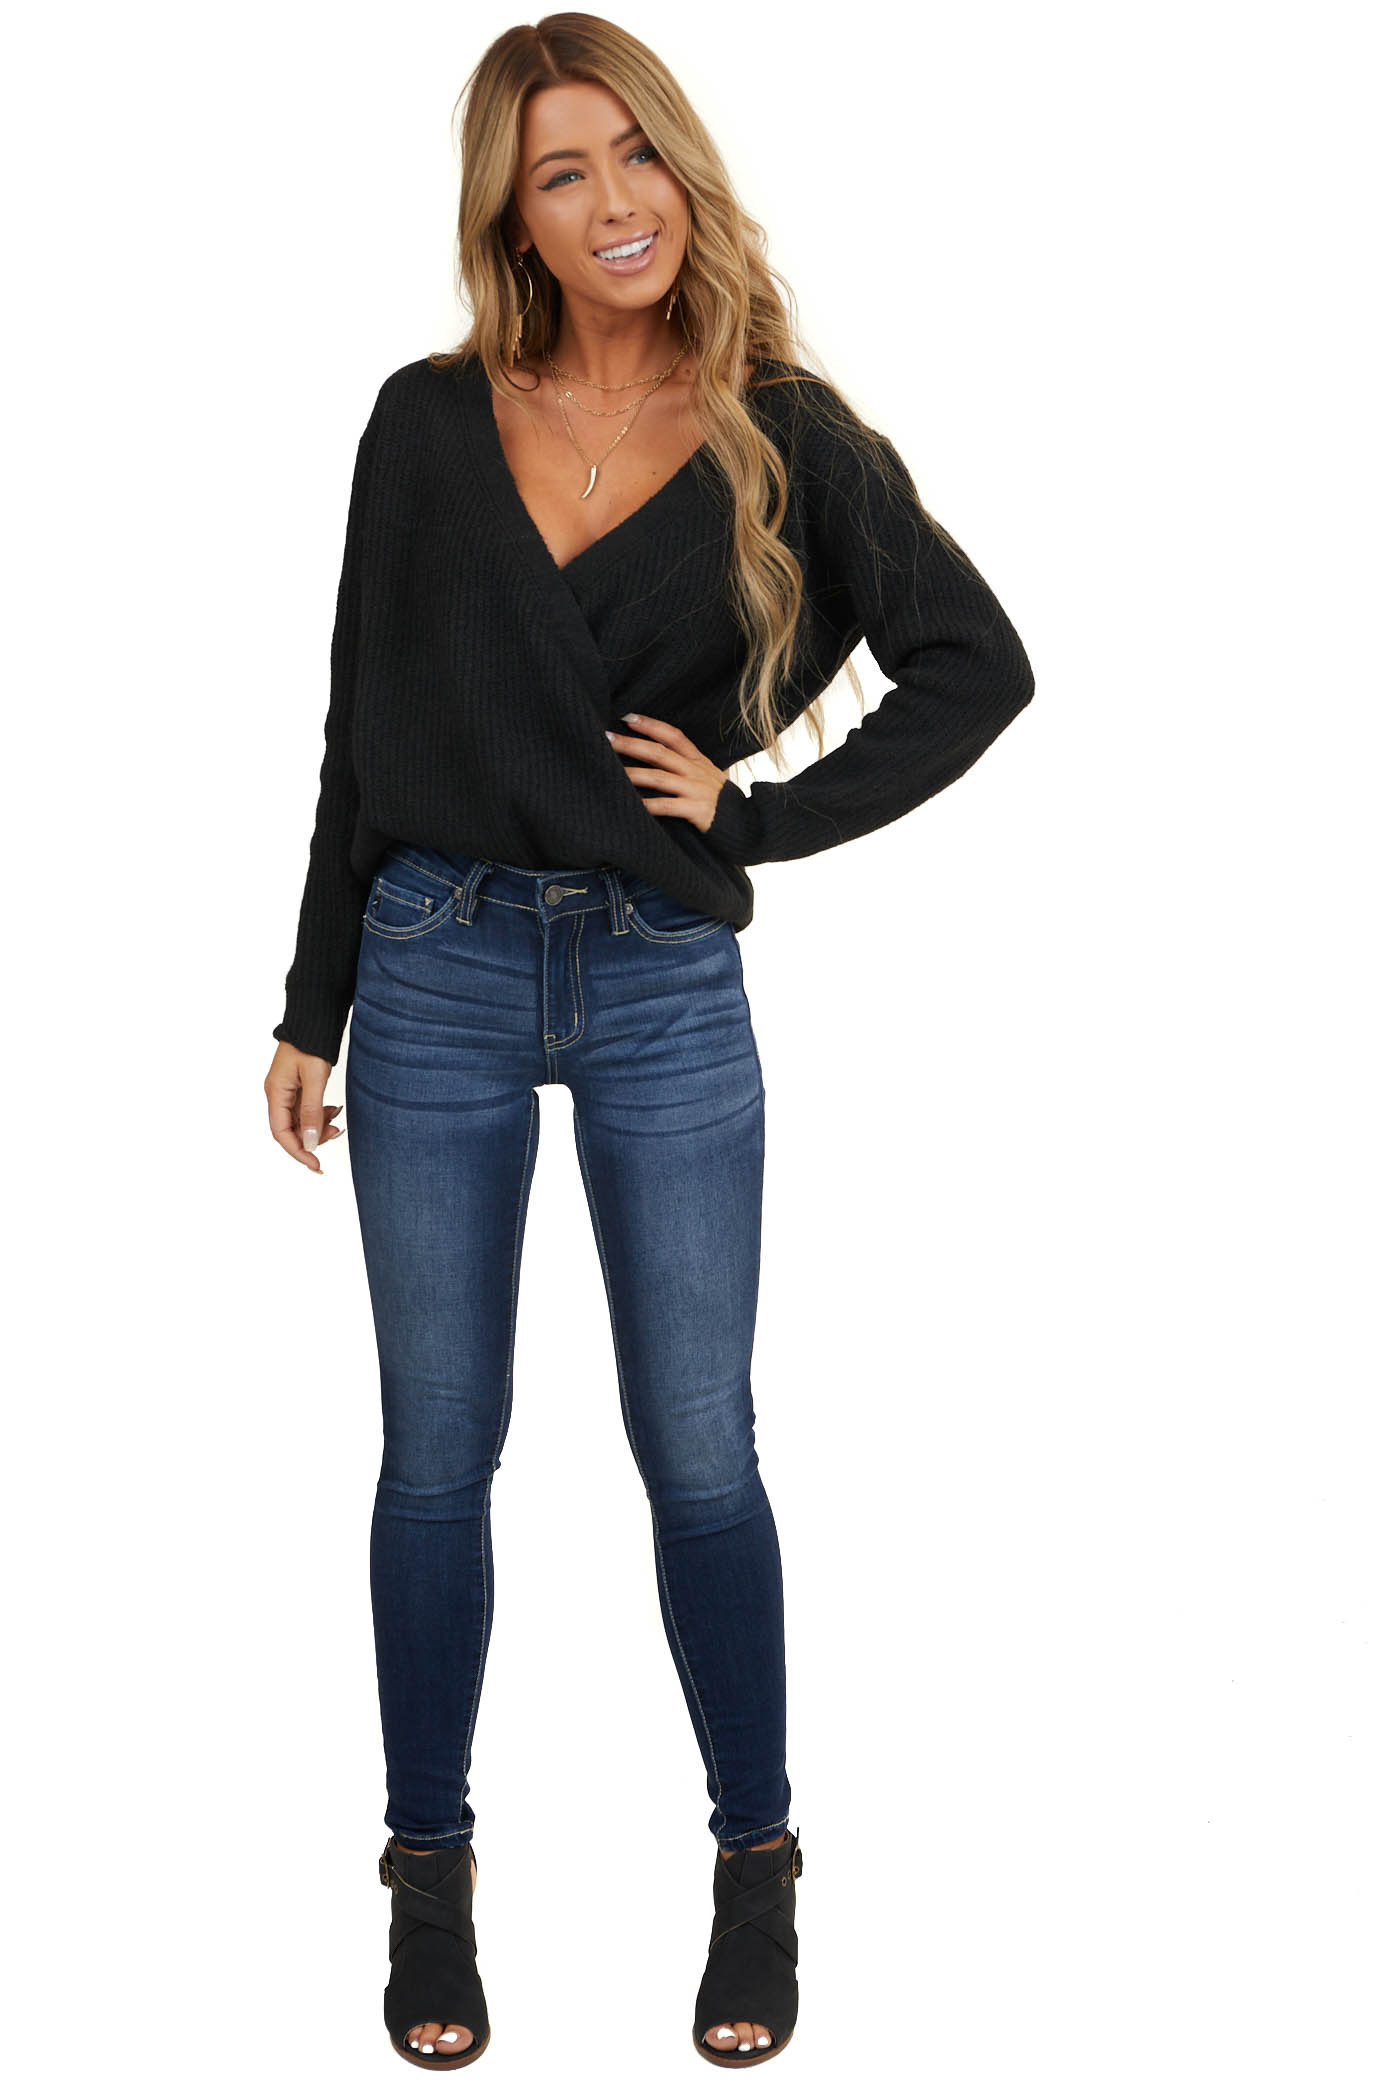 Black Surplice Cropped Sweater Top with Deep V Neckline